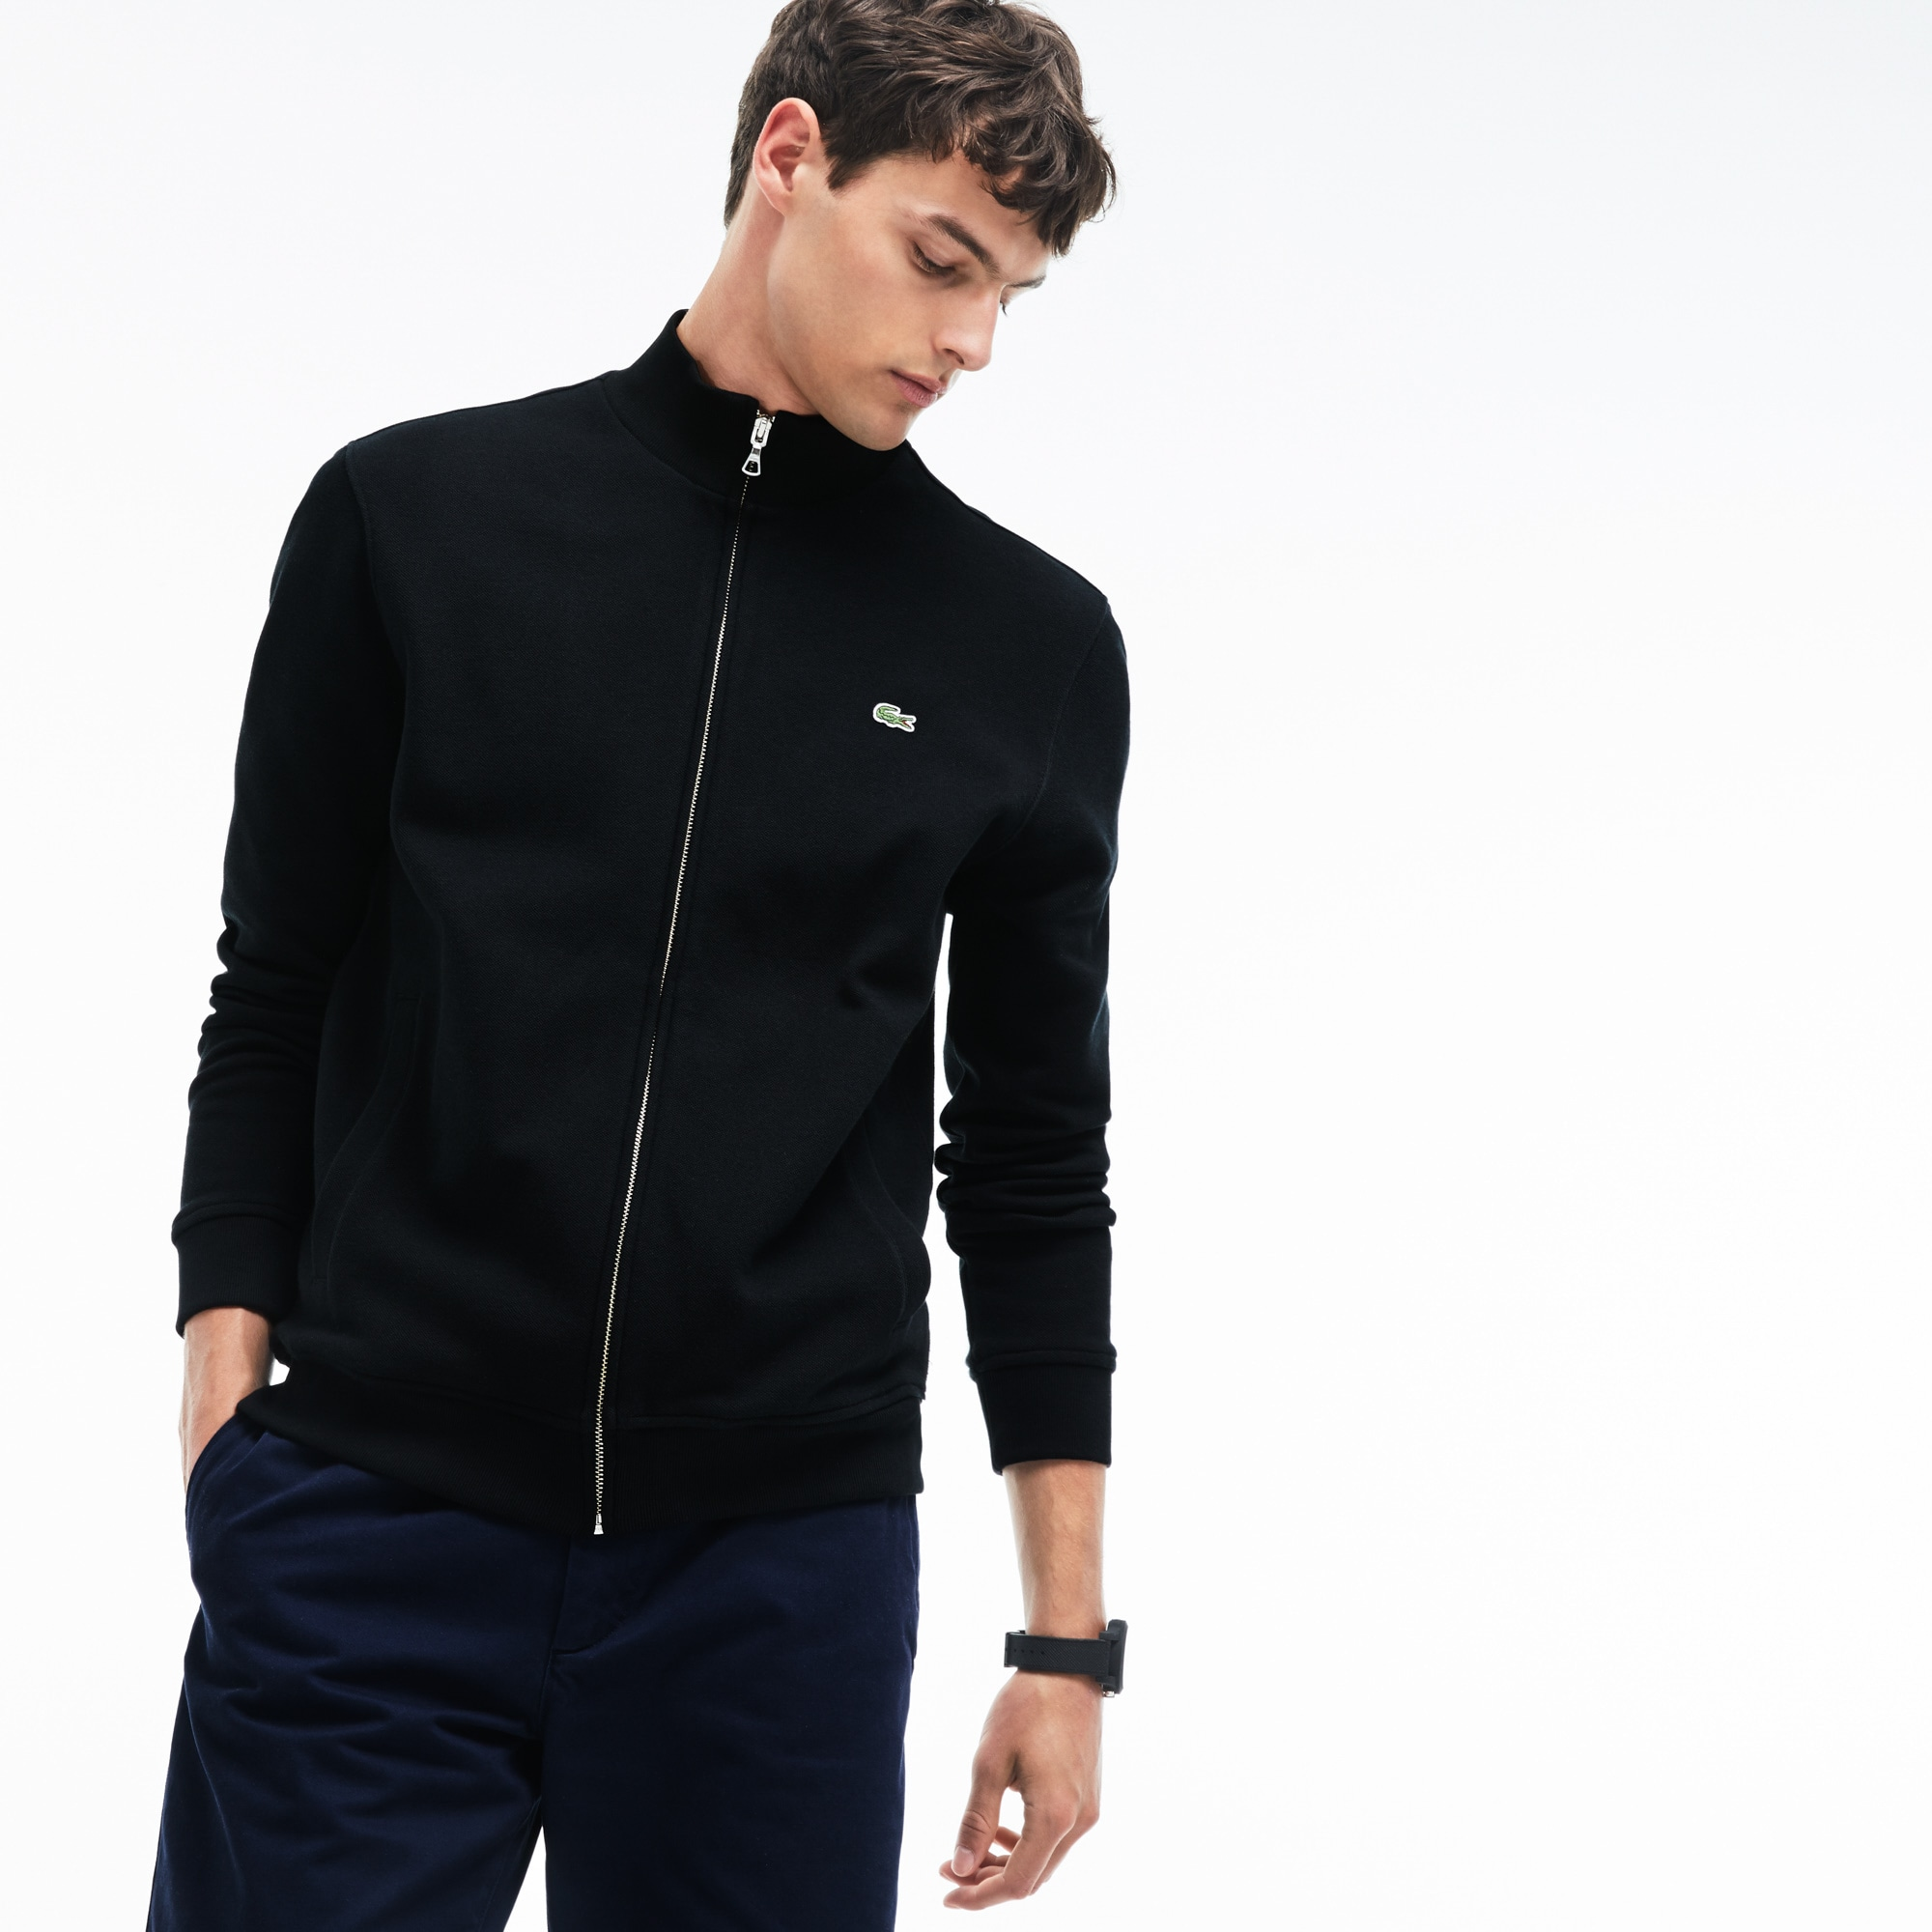 Men's Zippered Stand-up Collar Fleece Sweatshirt